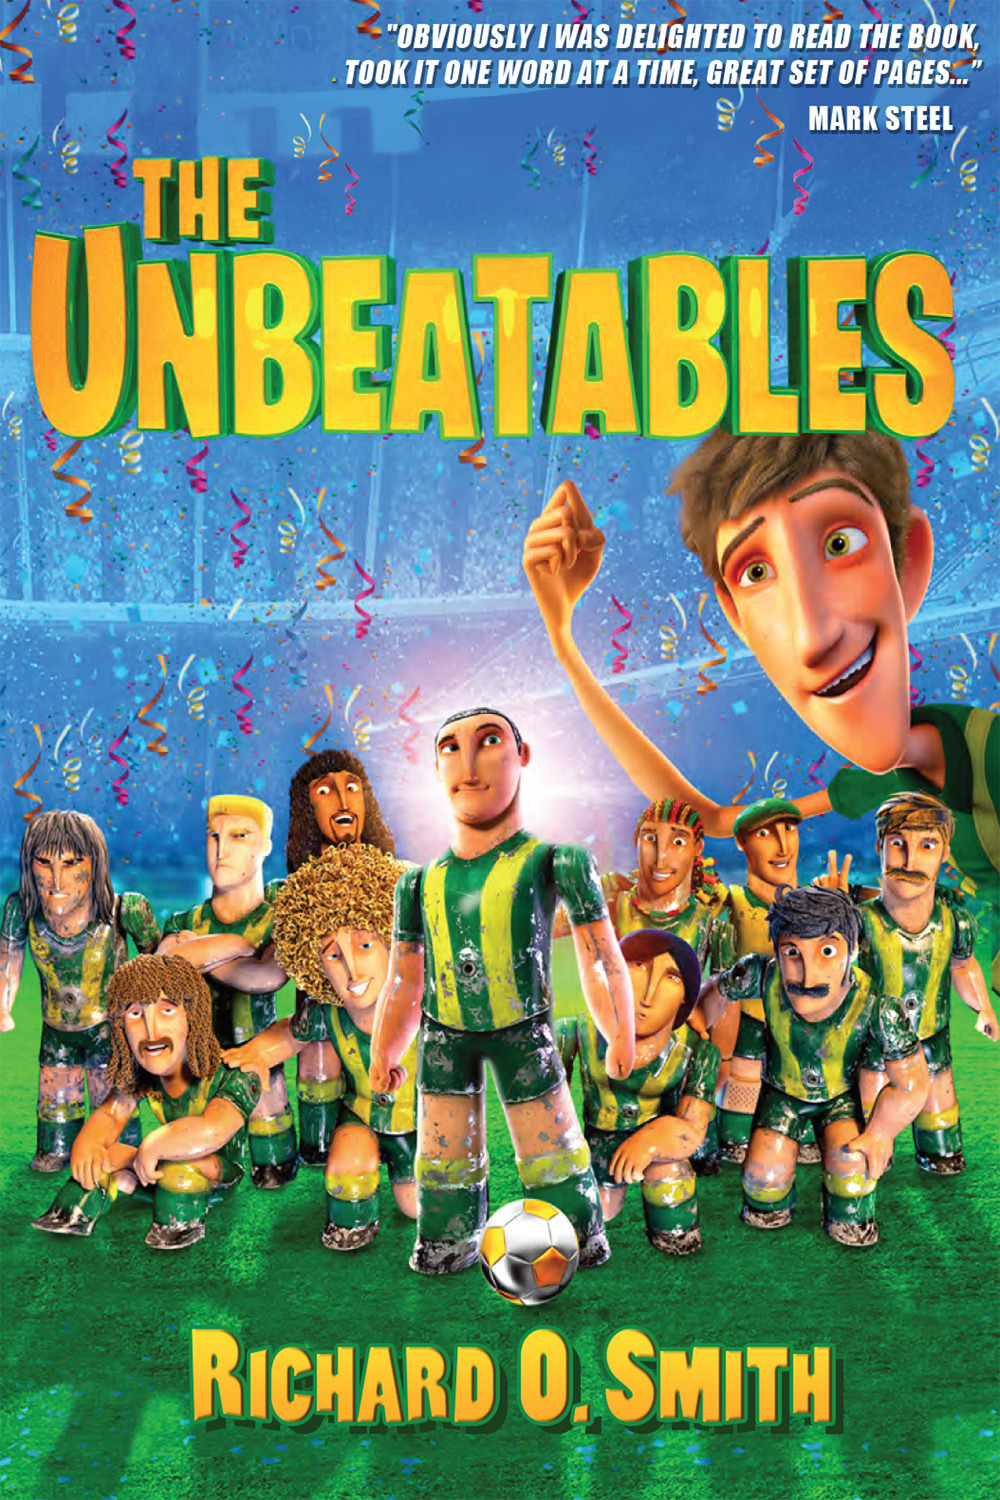 Smith, Richard O. - The Unbeatables, ebook